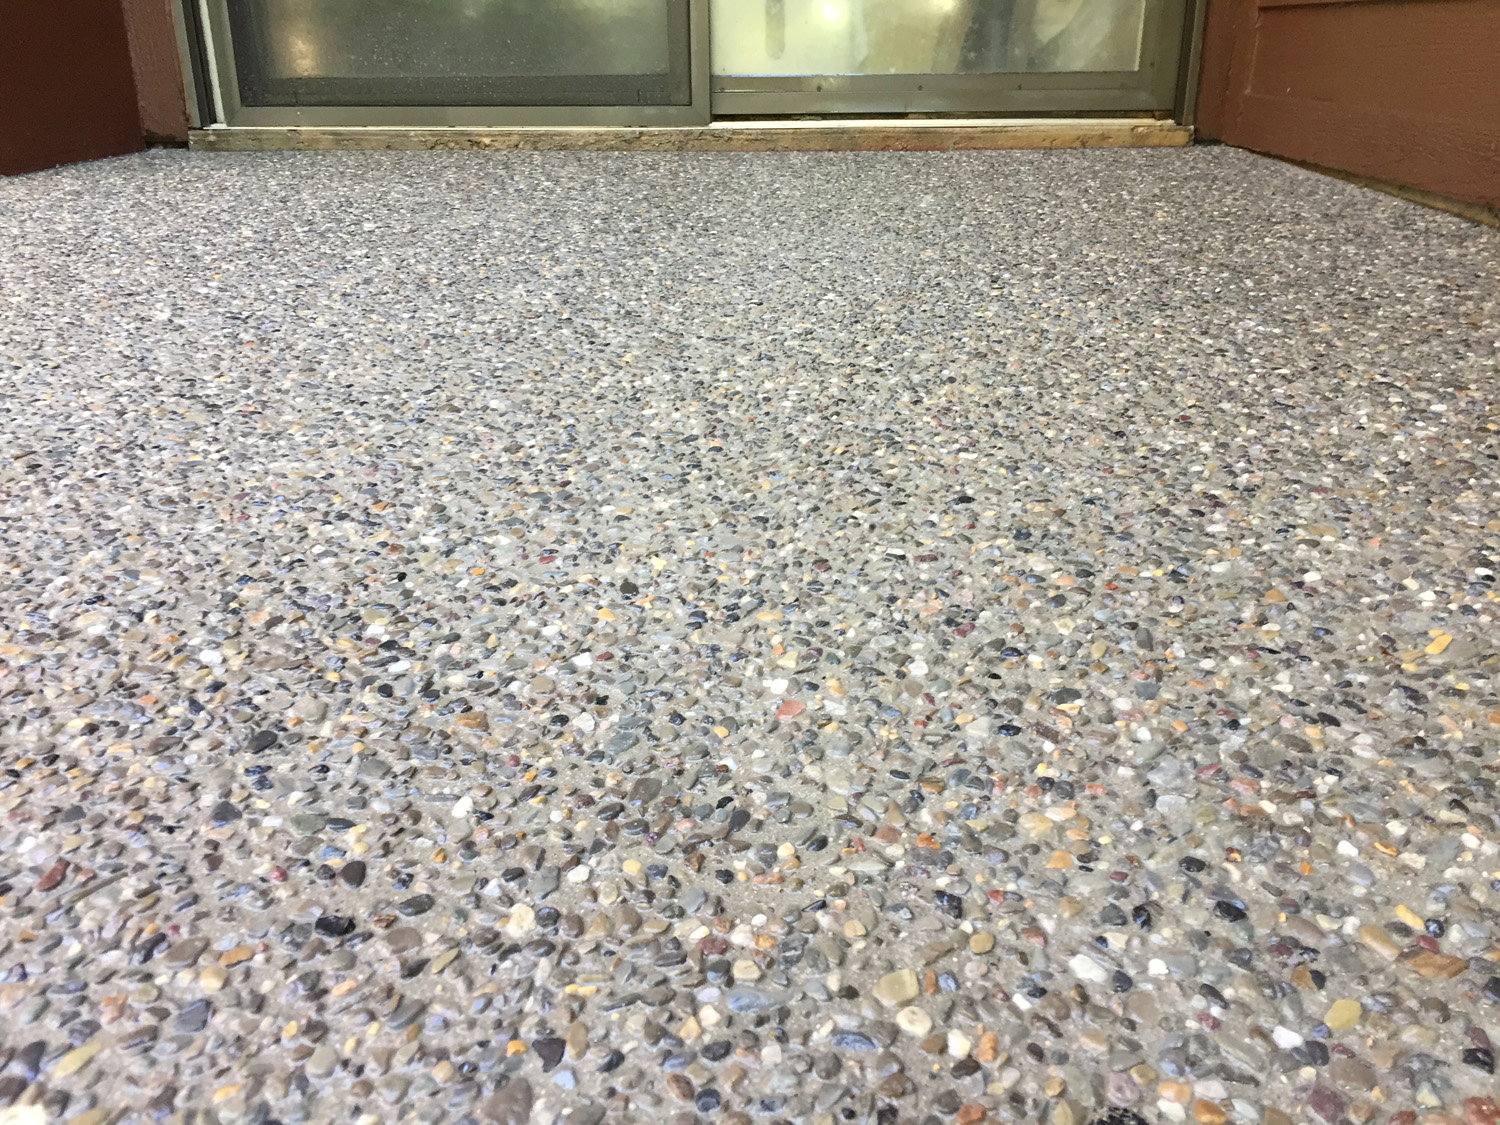 This picture shows an exposed aggregate patio, using Brickform SSD. The stone is a river jack pea gravel.